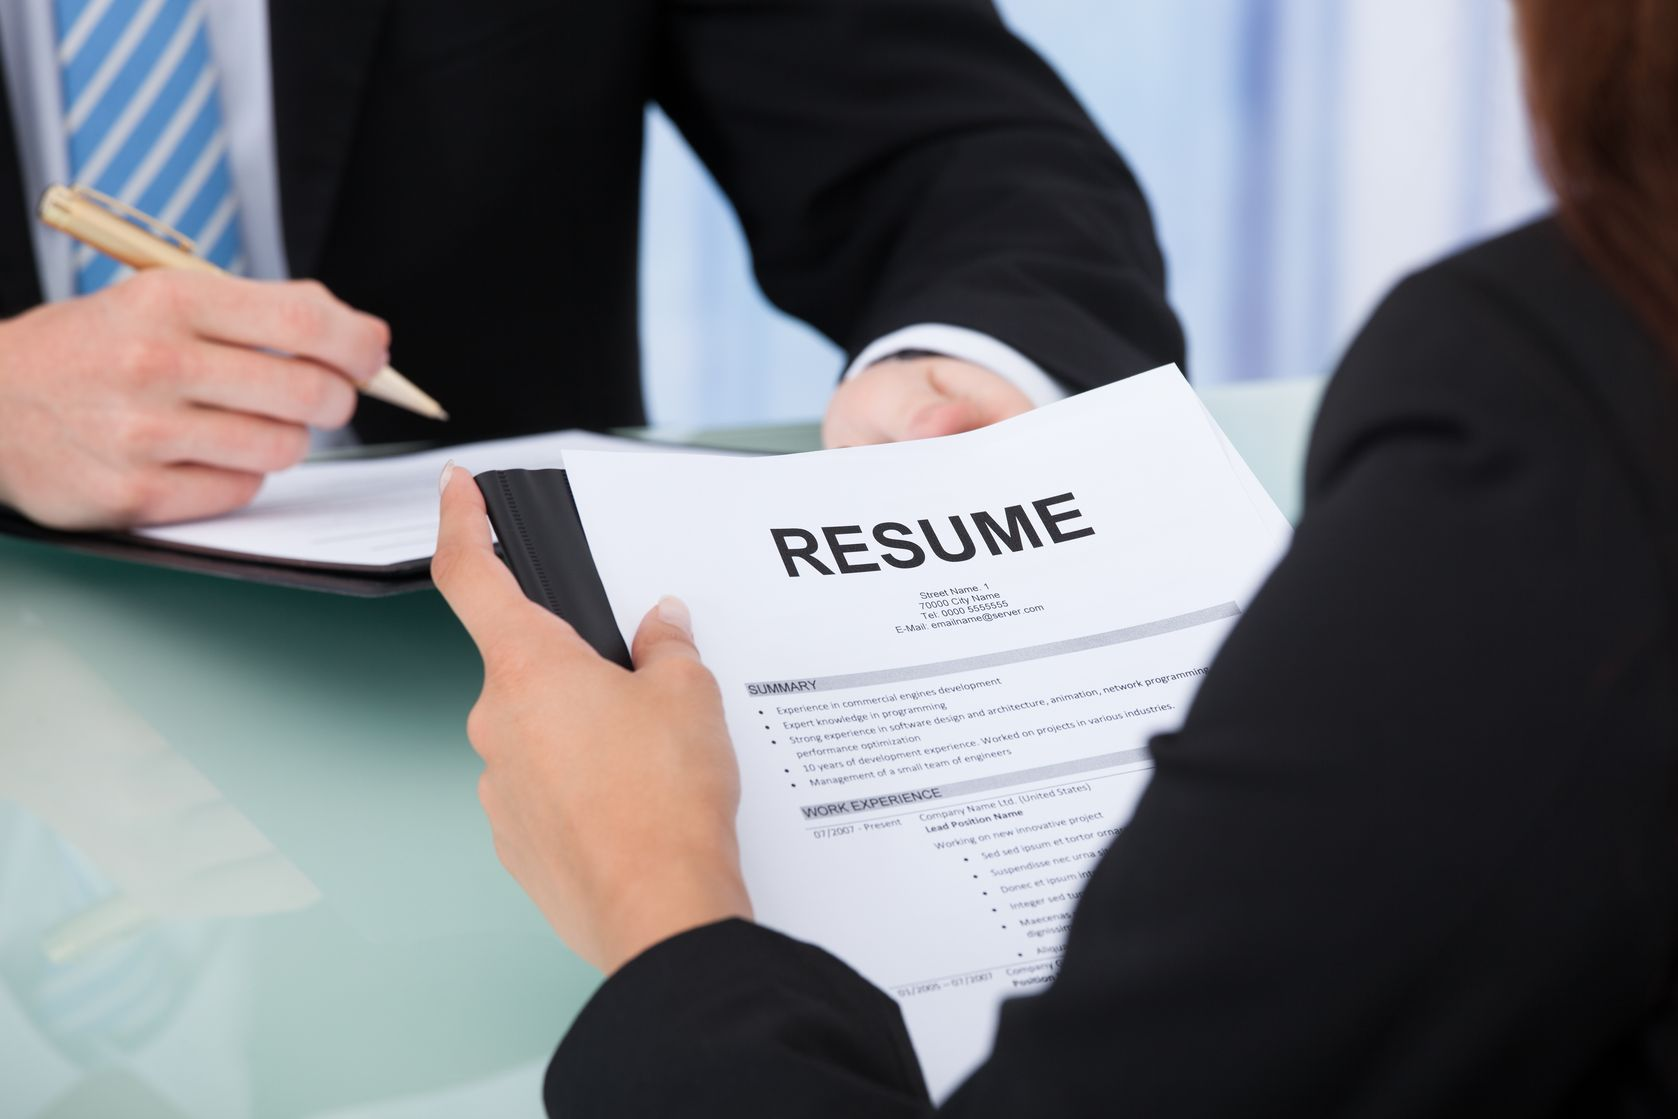 best resume writing service dubai research paper for career counseling and bcg sample Resume Career Counseling And Resume Writing